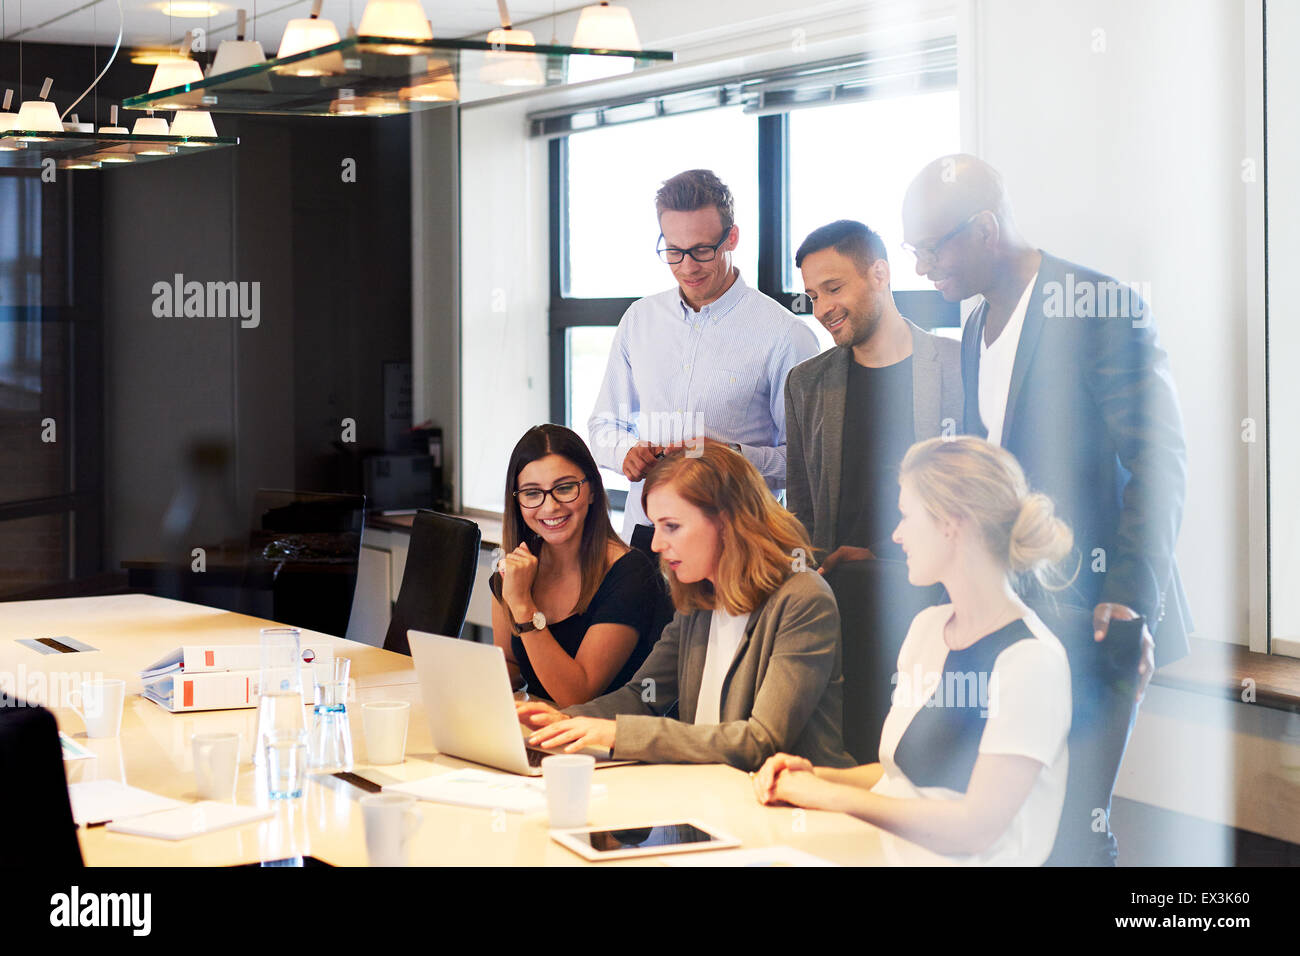 Group of young executives in conference room gathered together looking at laptop - Stock Image